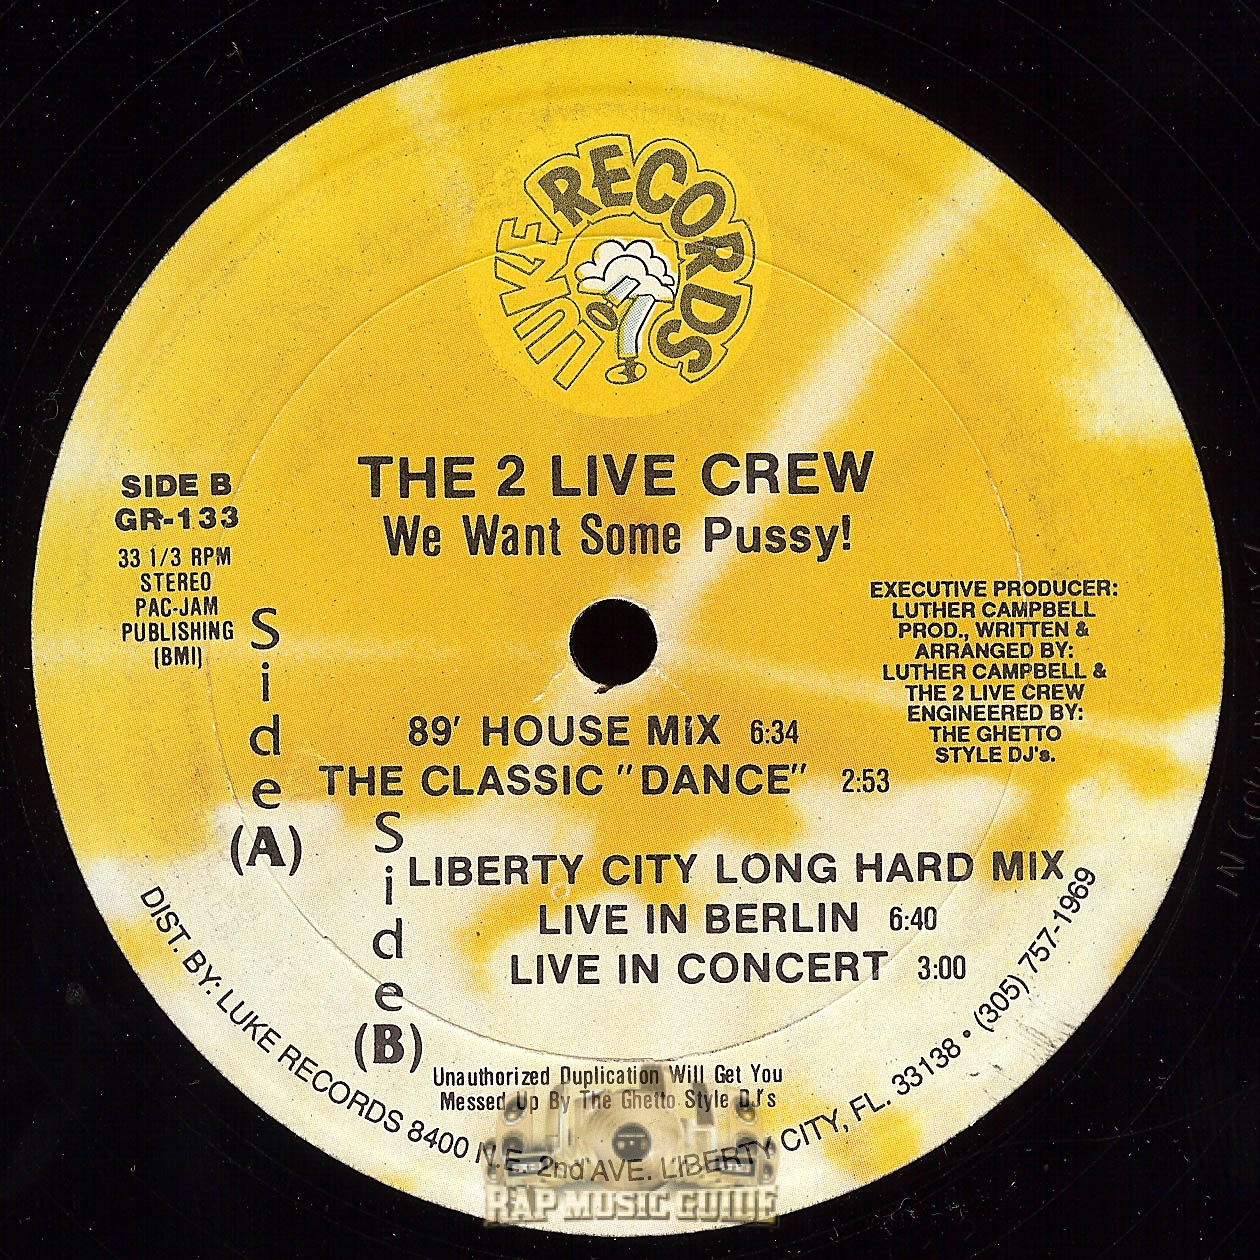 2 live crew we want some pussy lyrics consider, that